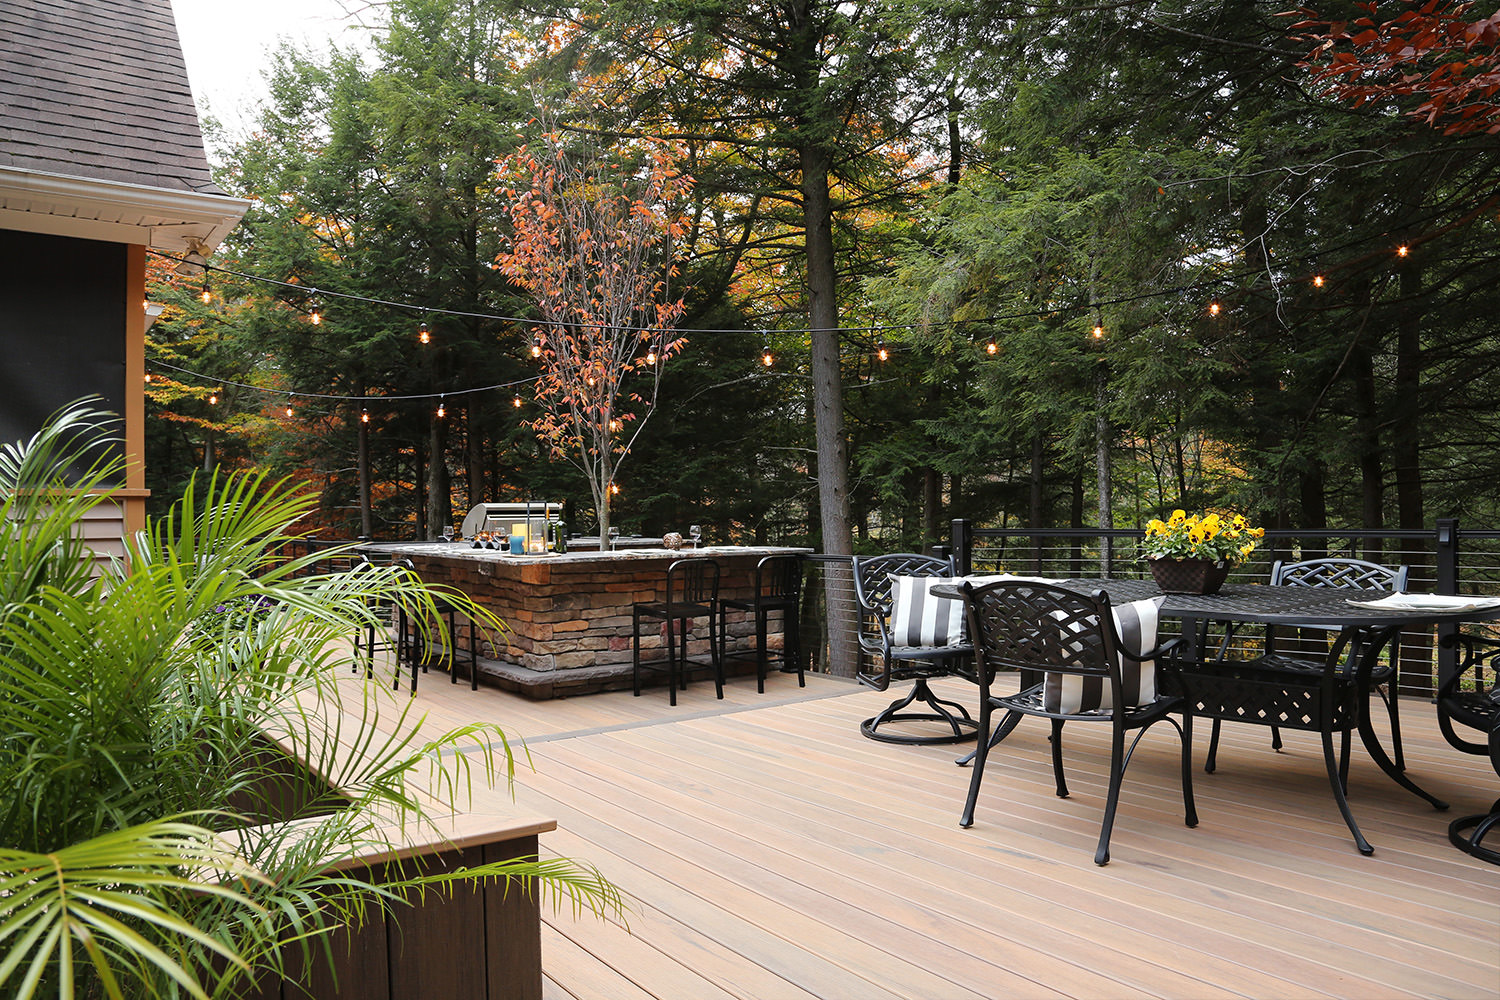 Different destination zones in this custom deck design make this space perfect for entertaining small and large groups alike!